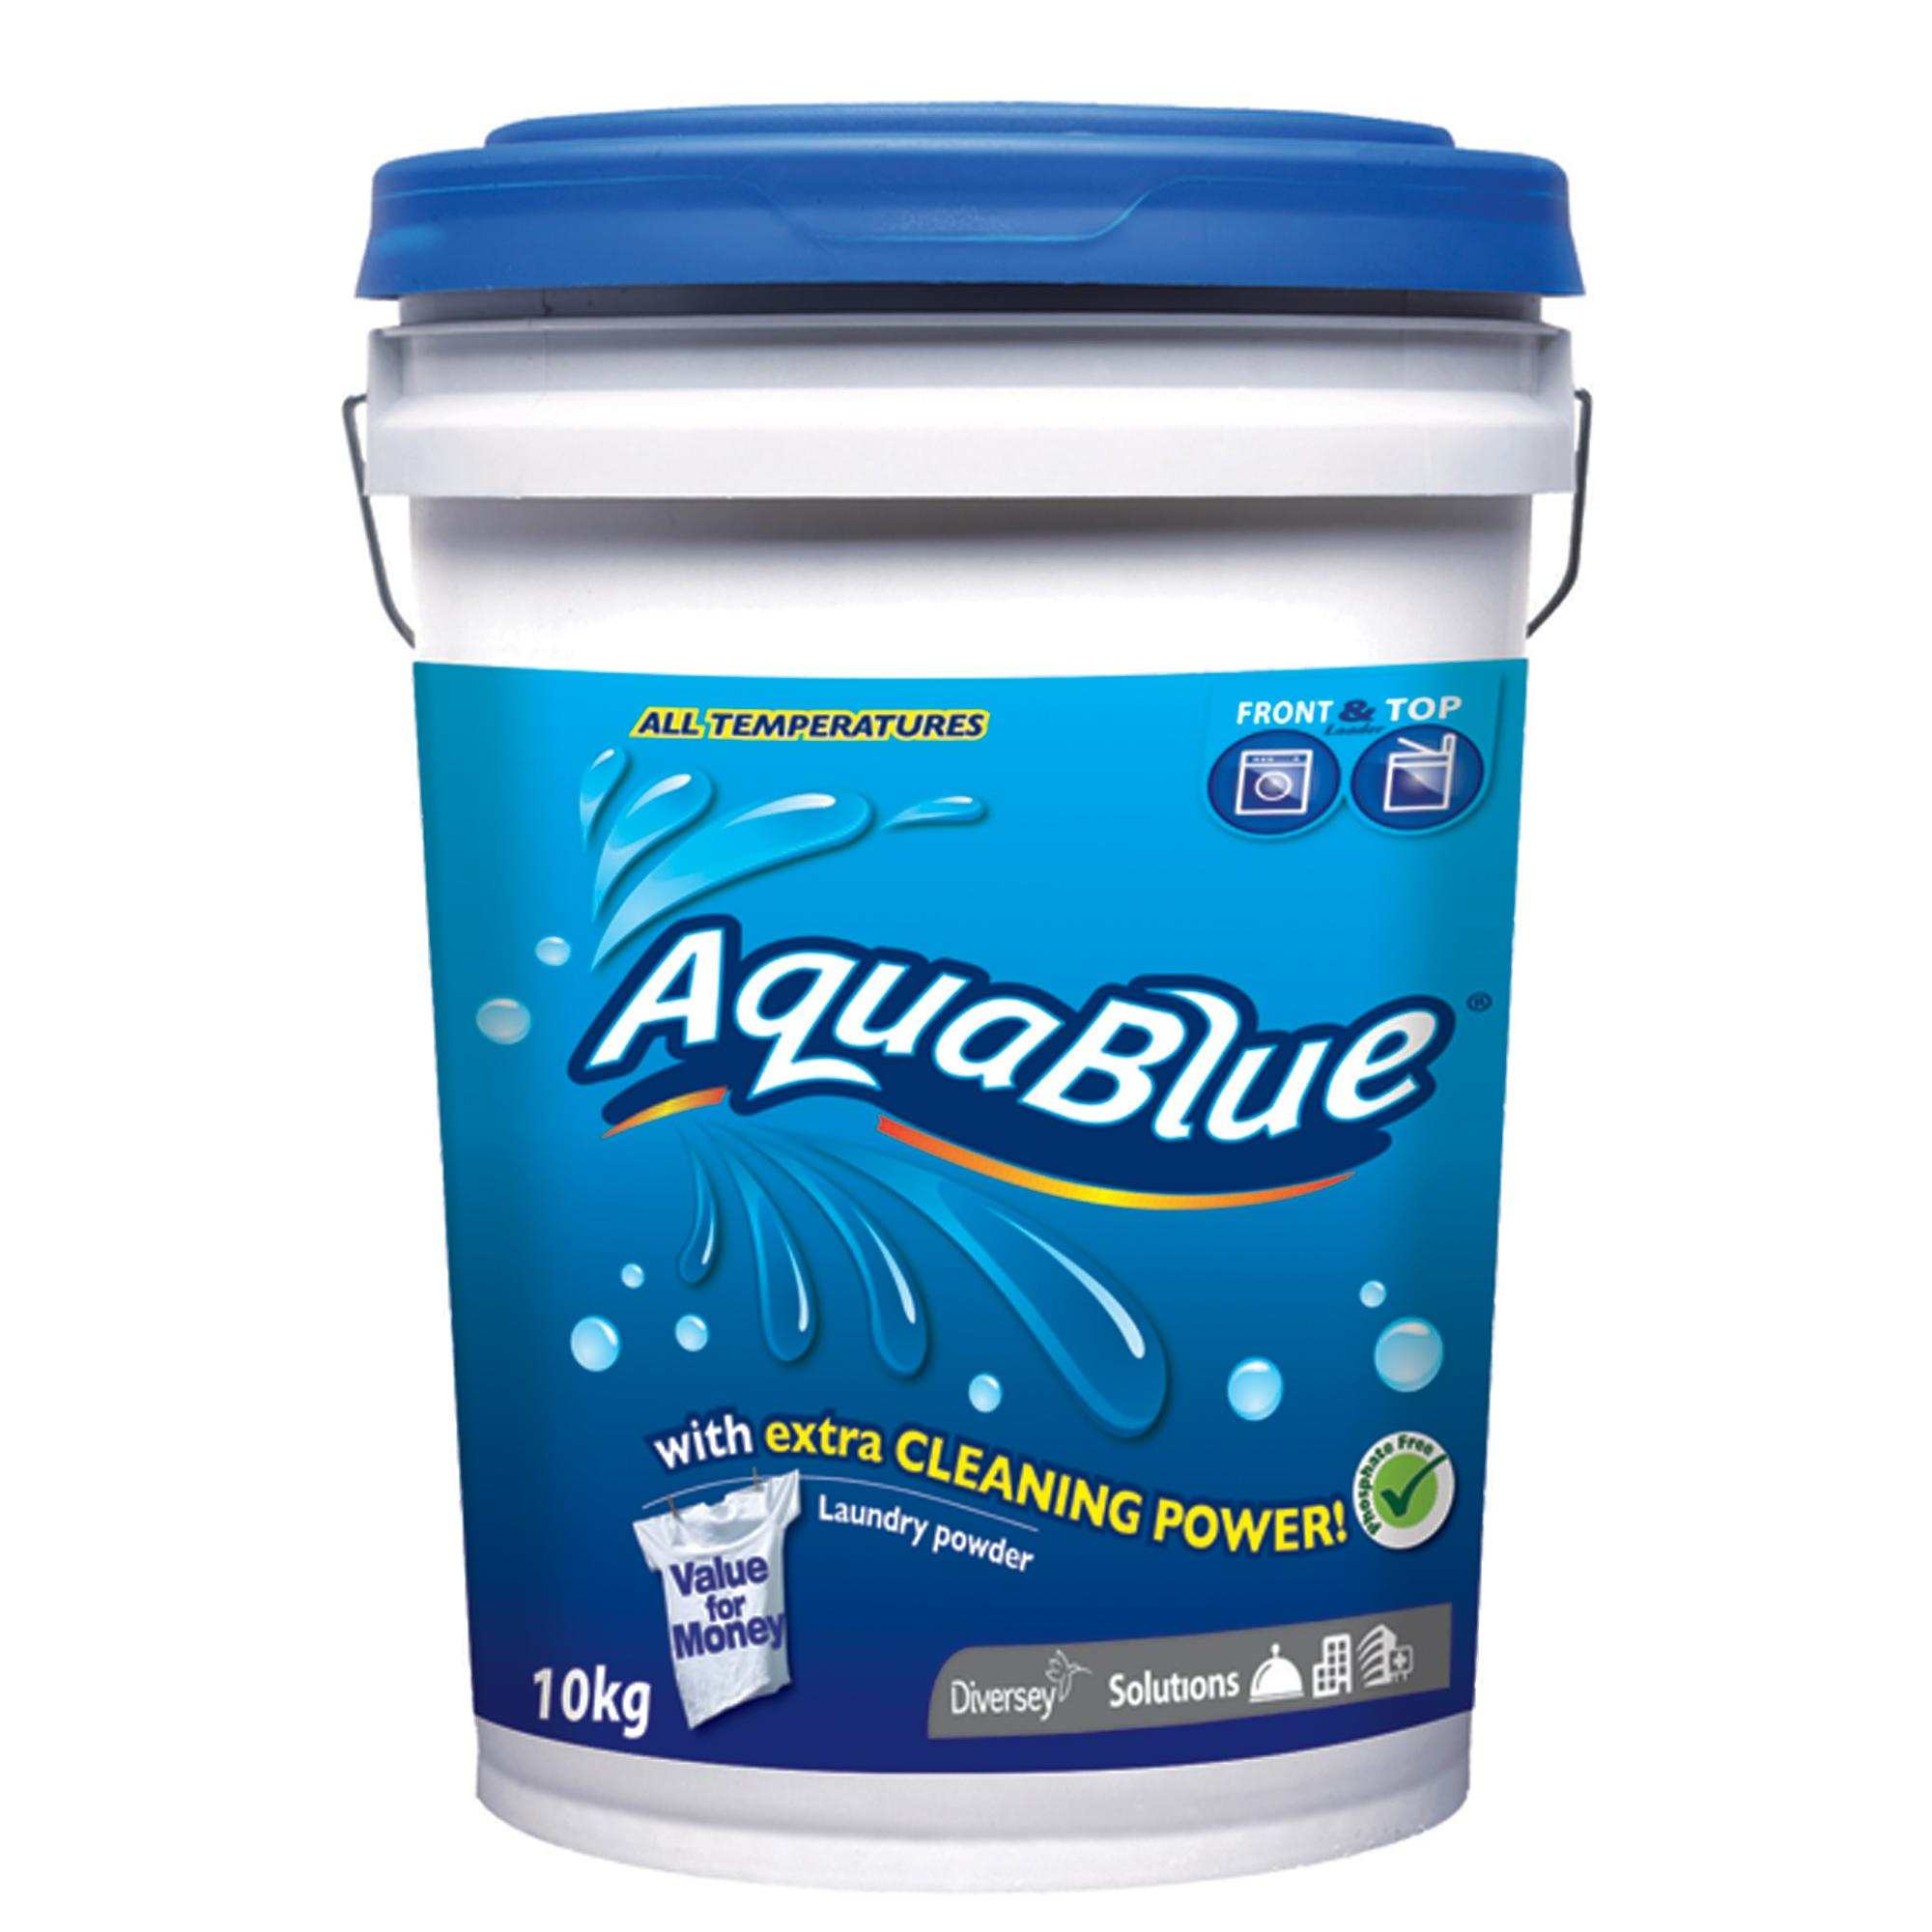 5547849%20Aqua%20Blue%20F_T%20Laundry%20Powder%20Bucket%20AU%202000x2000px-1.jpg